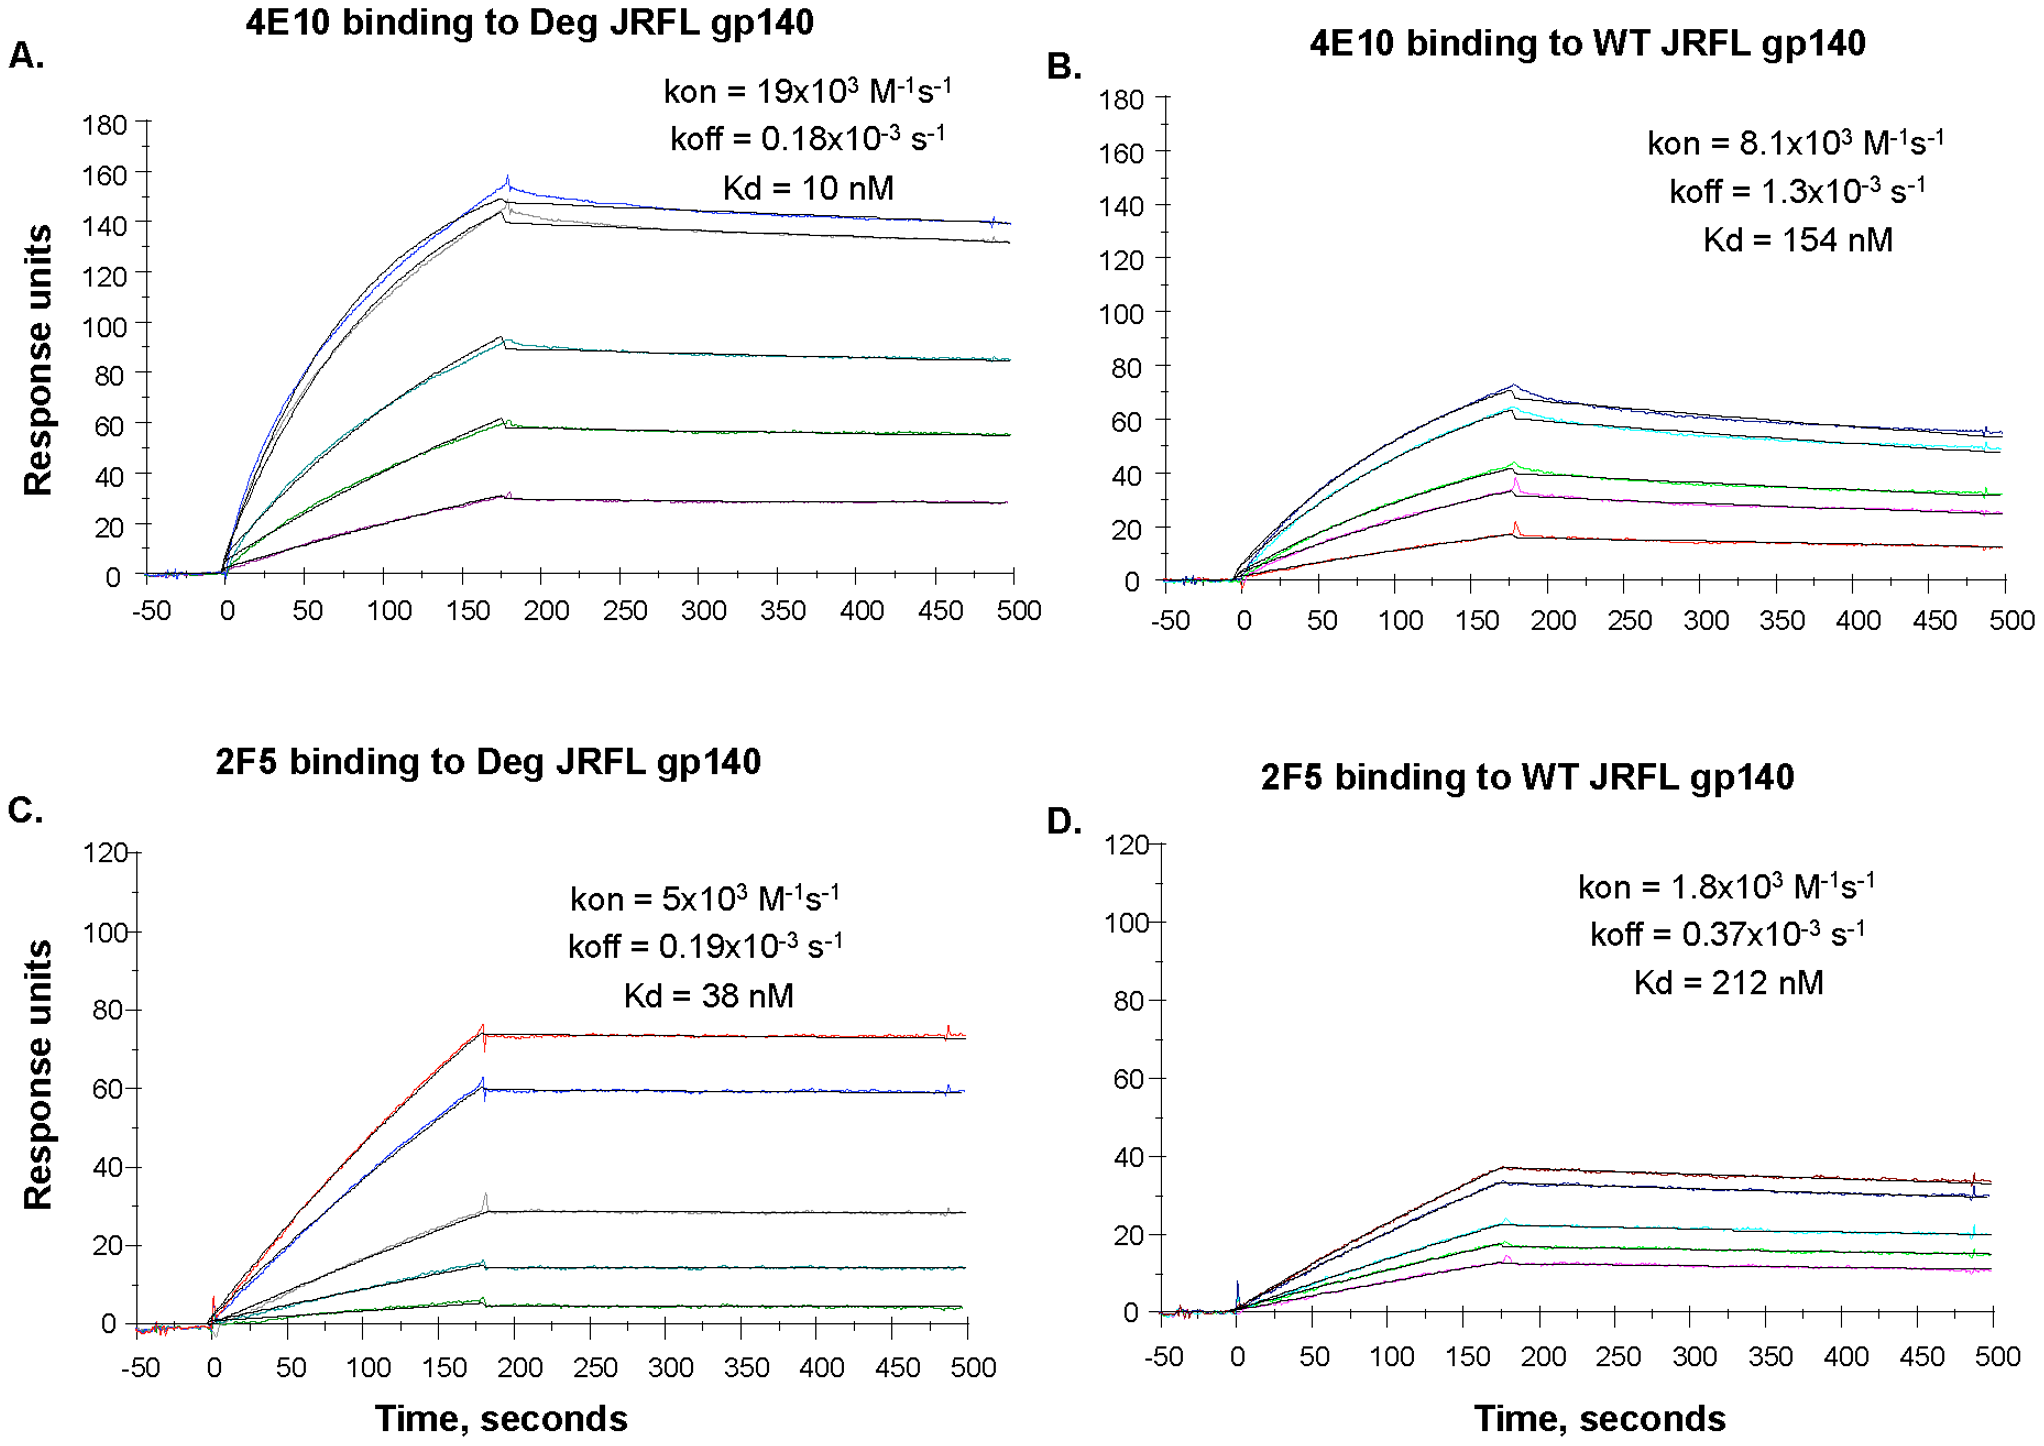 SPR assays for native and deglycosylated JRFL gp140 binding to mAbs 4E10 and 2F5.